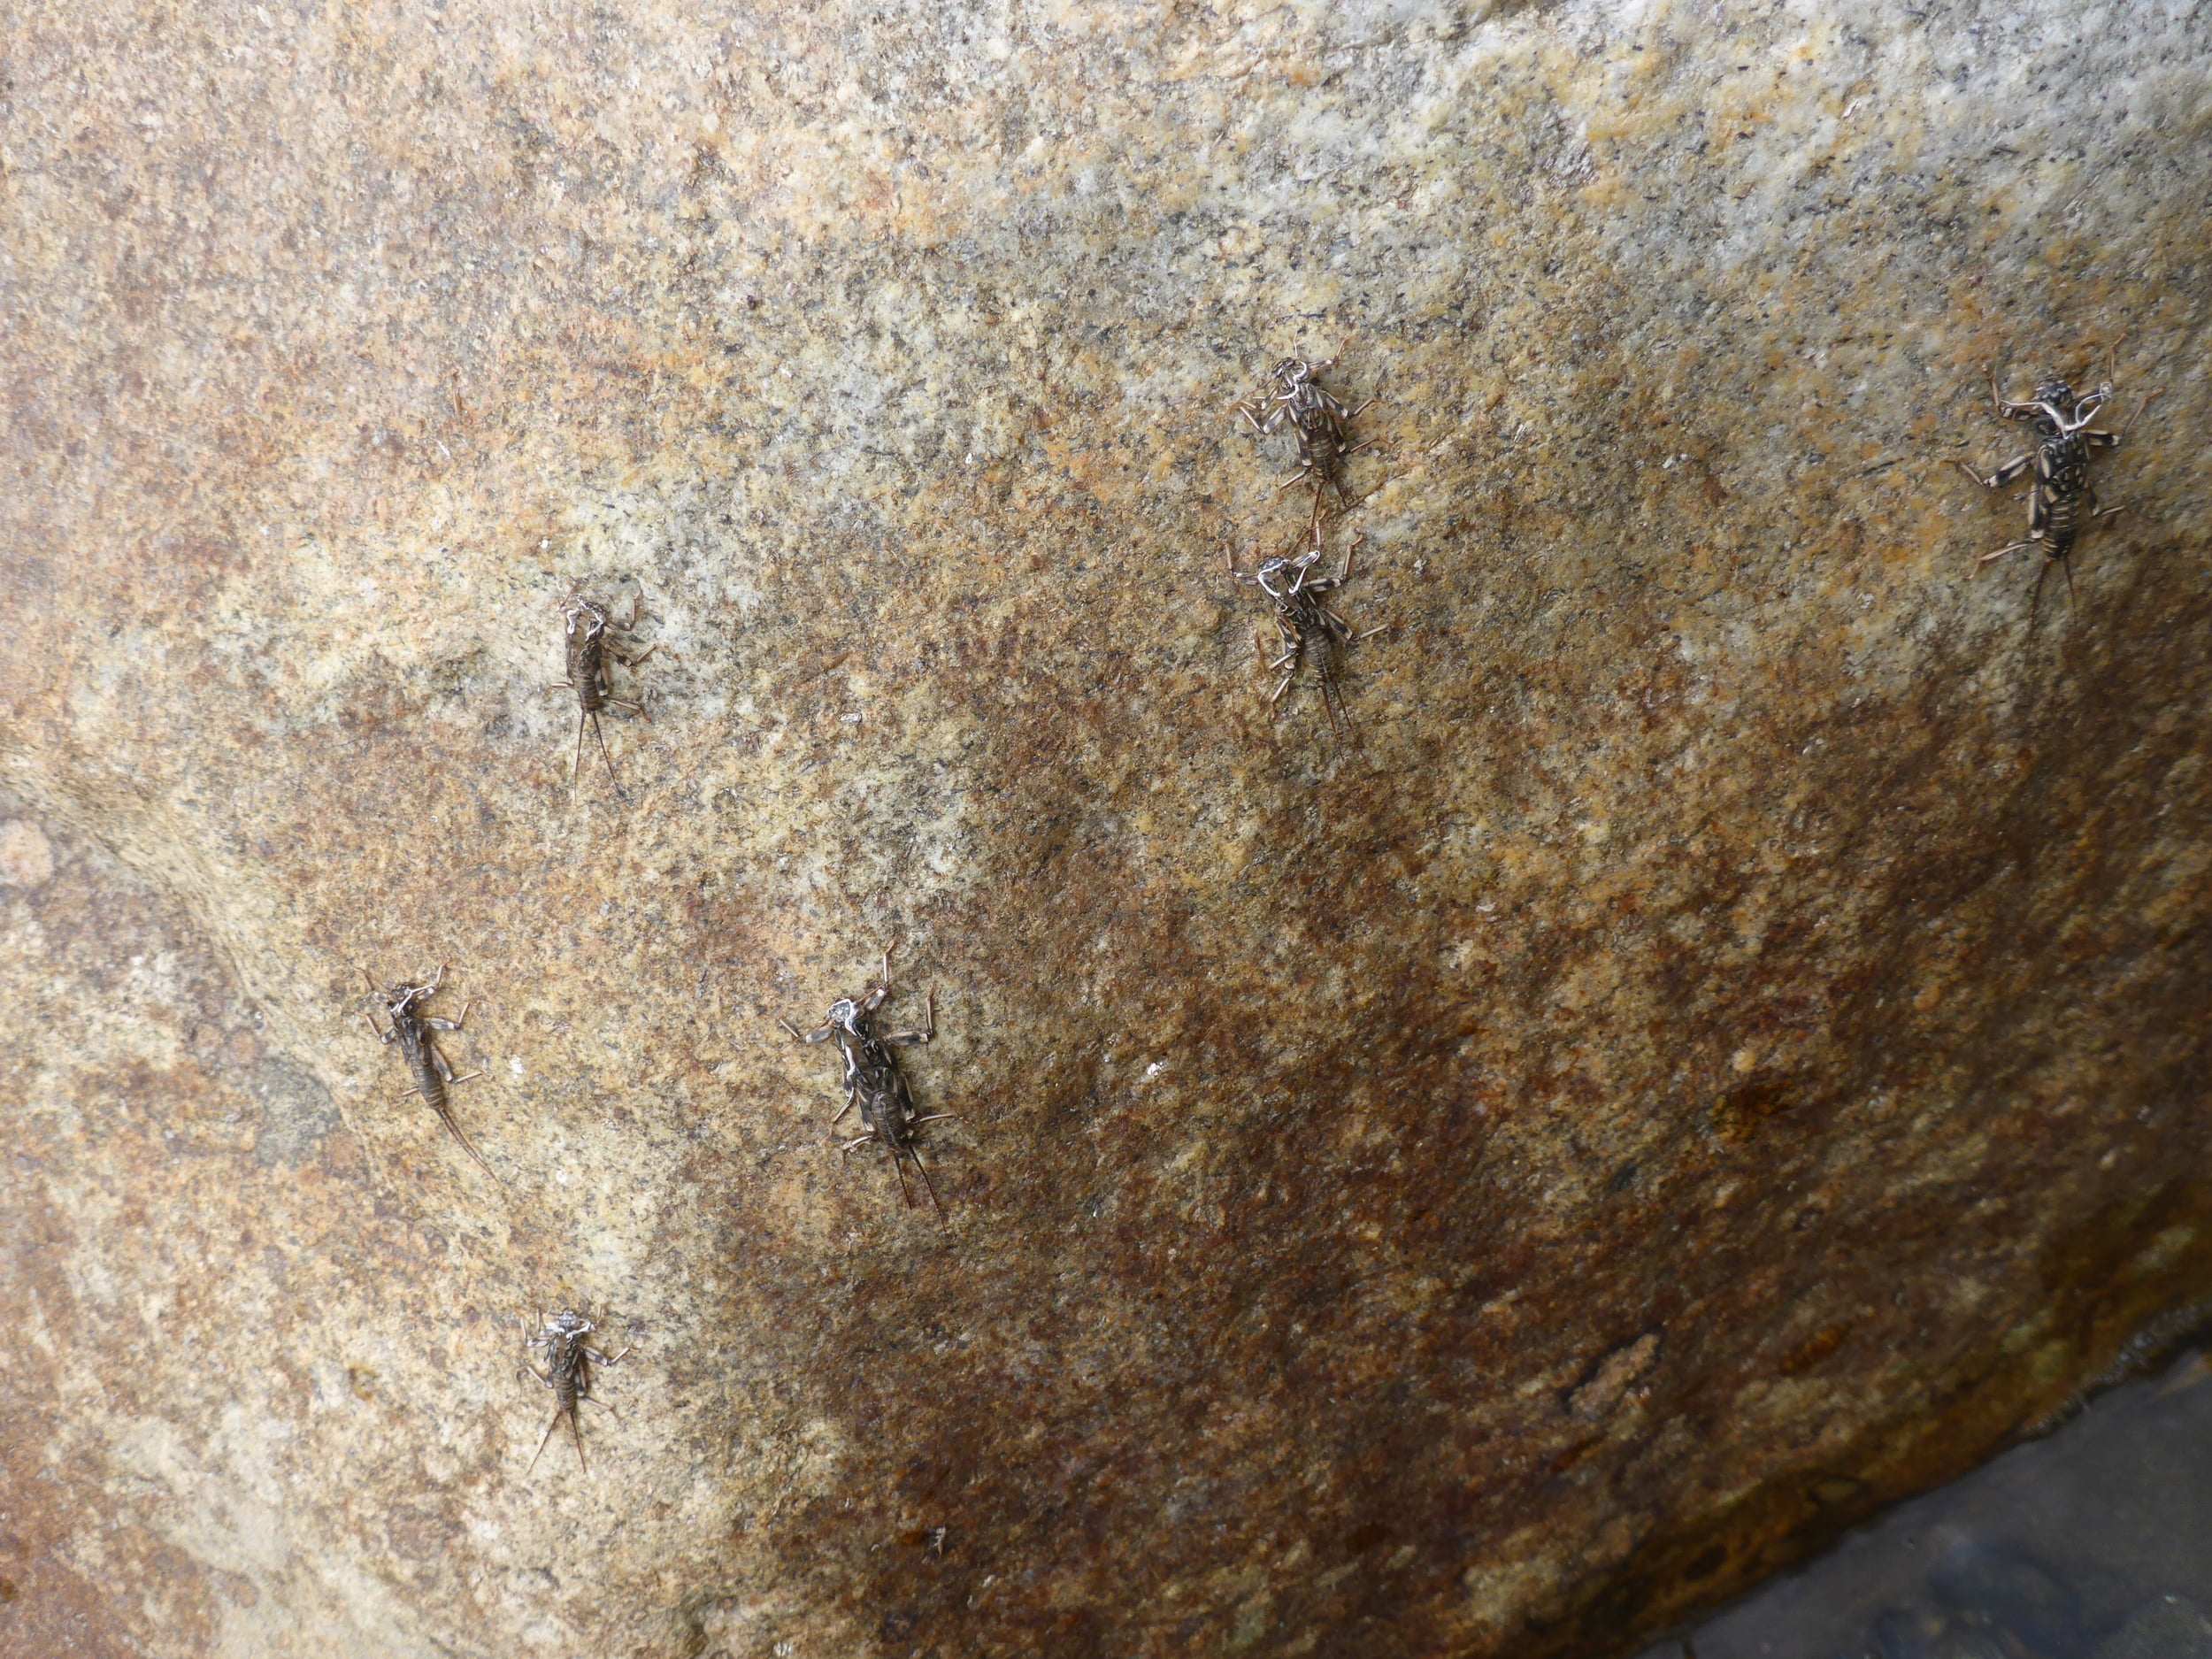 July means Stonefly city on the Andro